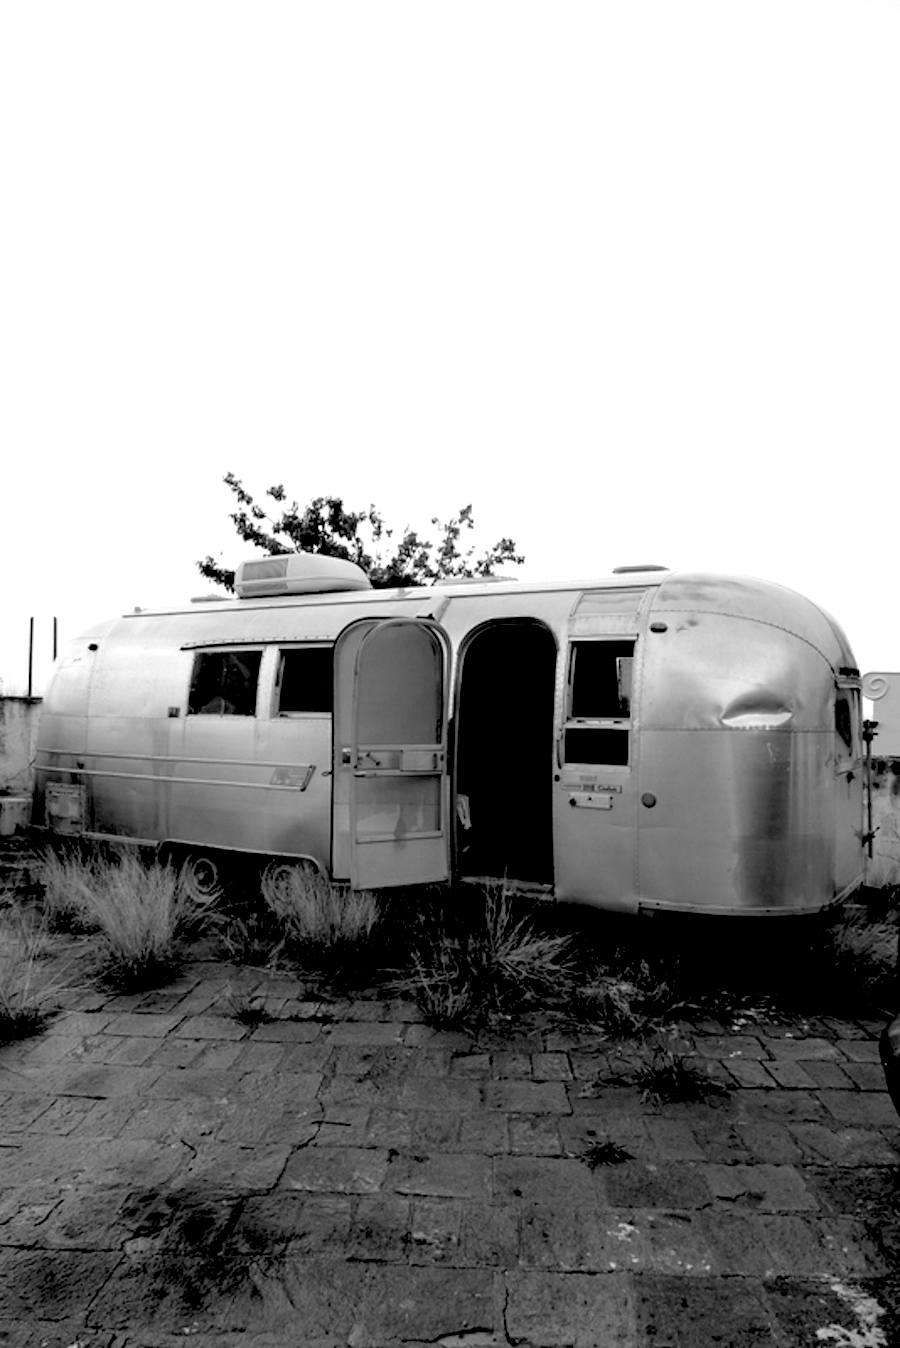 For years the Overlander had been left abandoned at the beach and arrived in very bad shape.